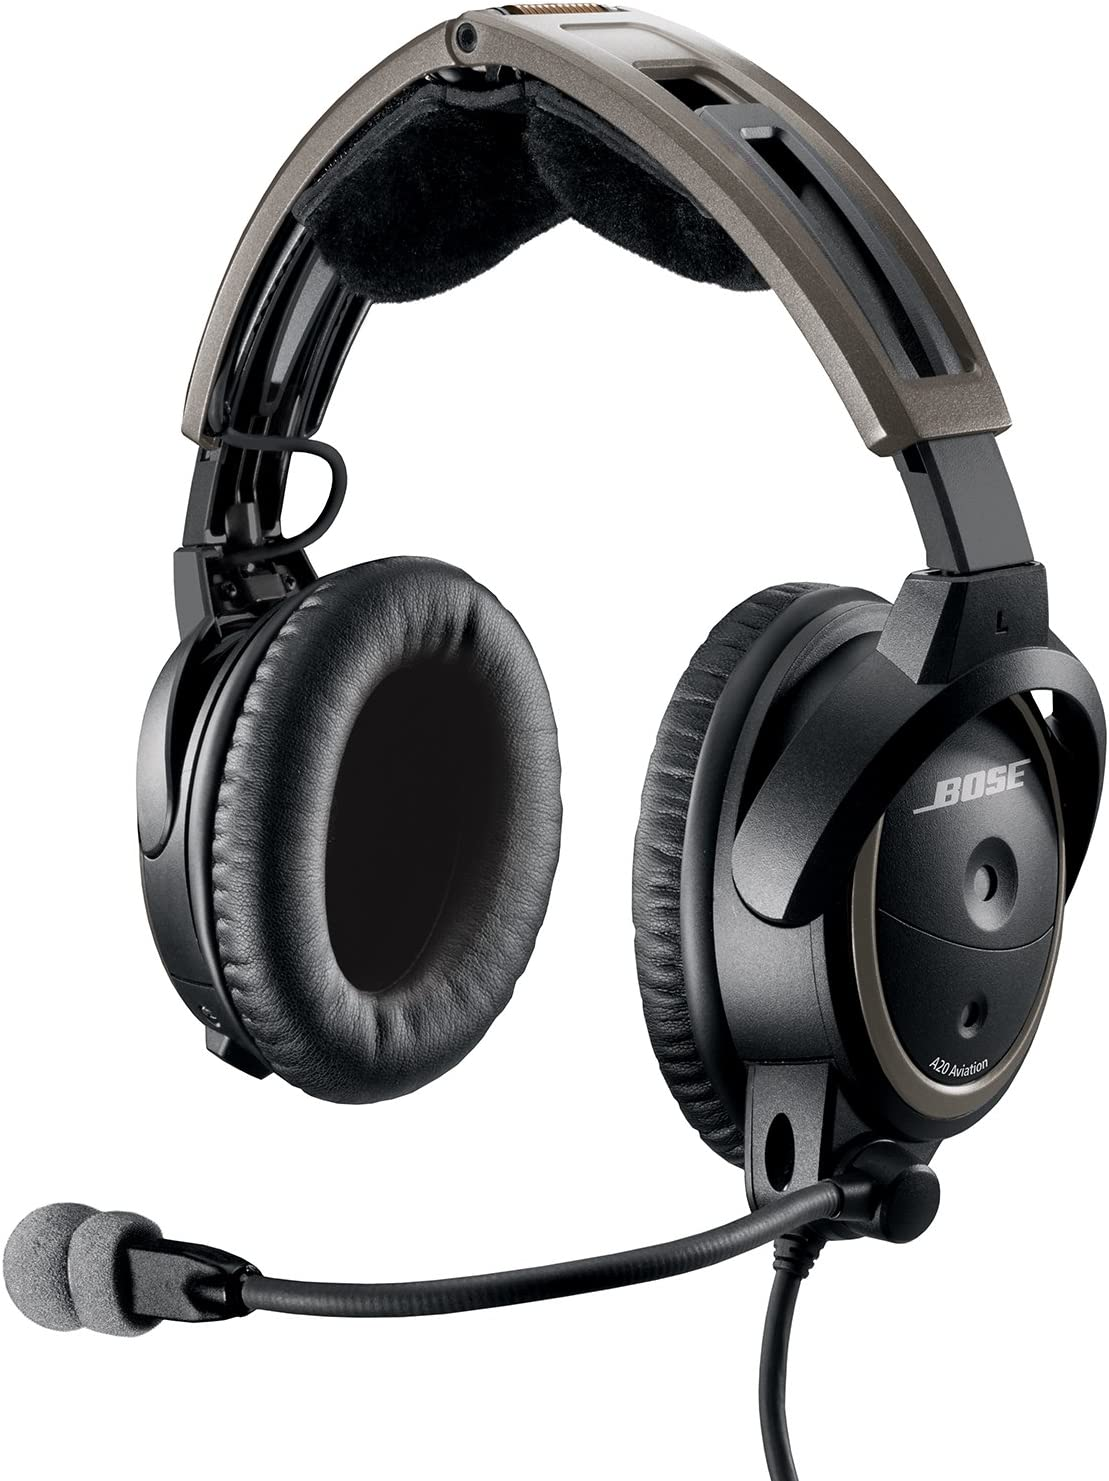 A20 Aviation Wireless Headset for